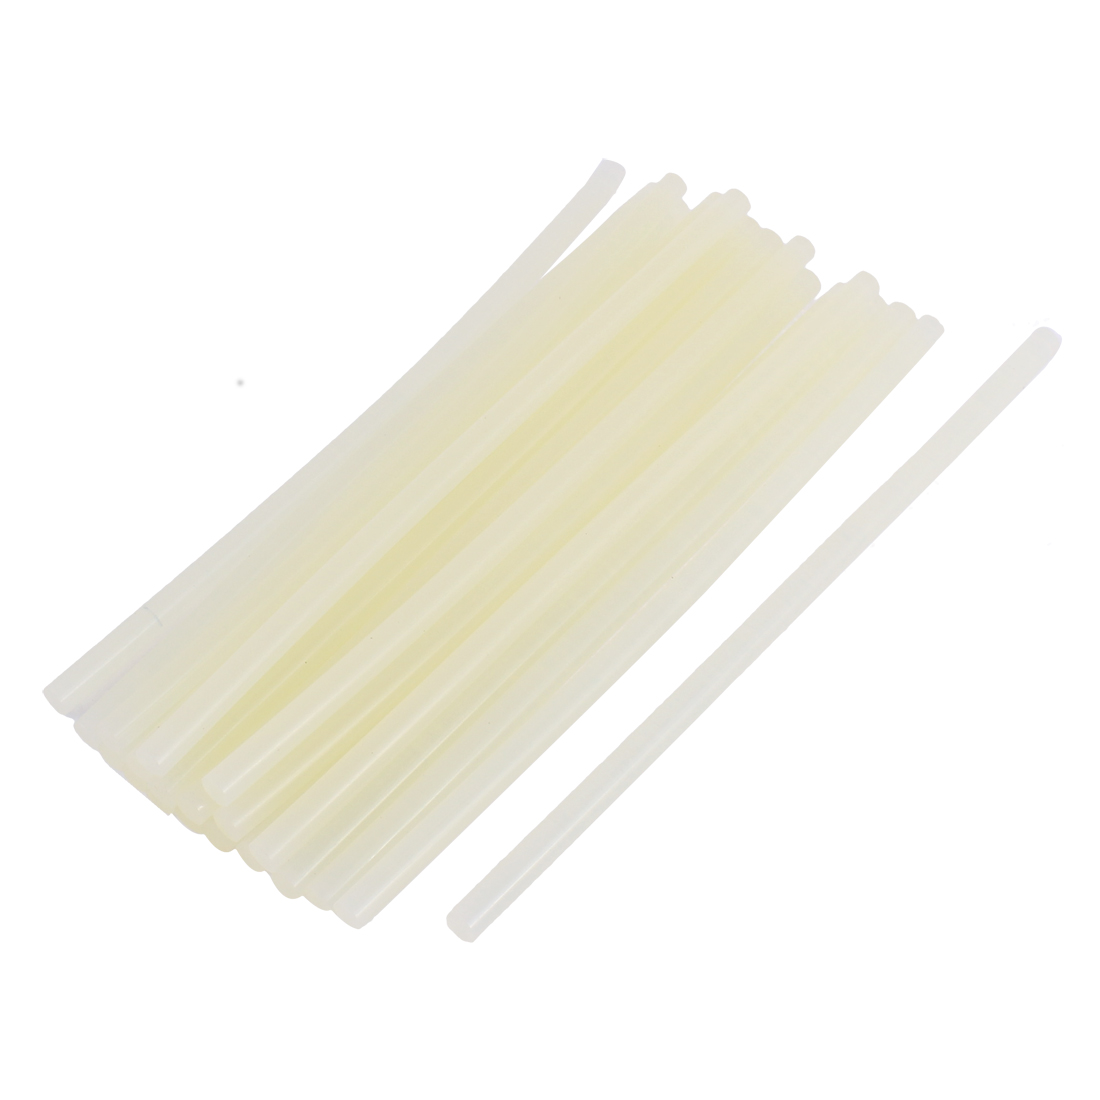 20Pcs Beige Glue Stick Hot Melt Gun Car Sudio Technology 200mm x 7mm